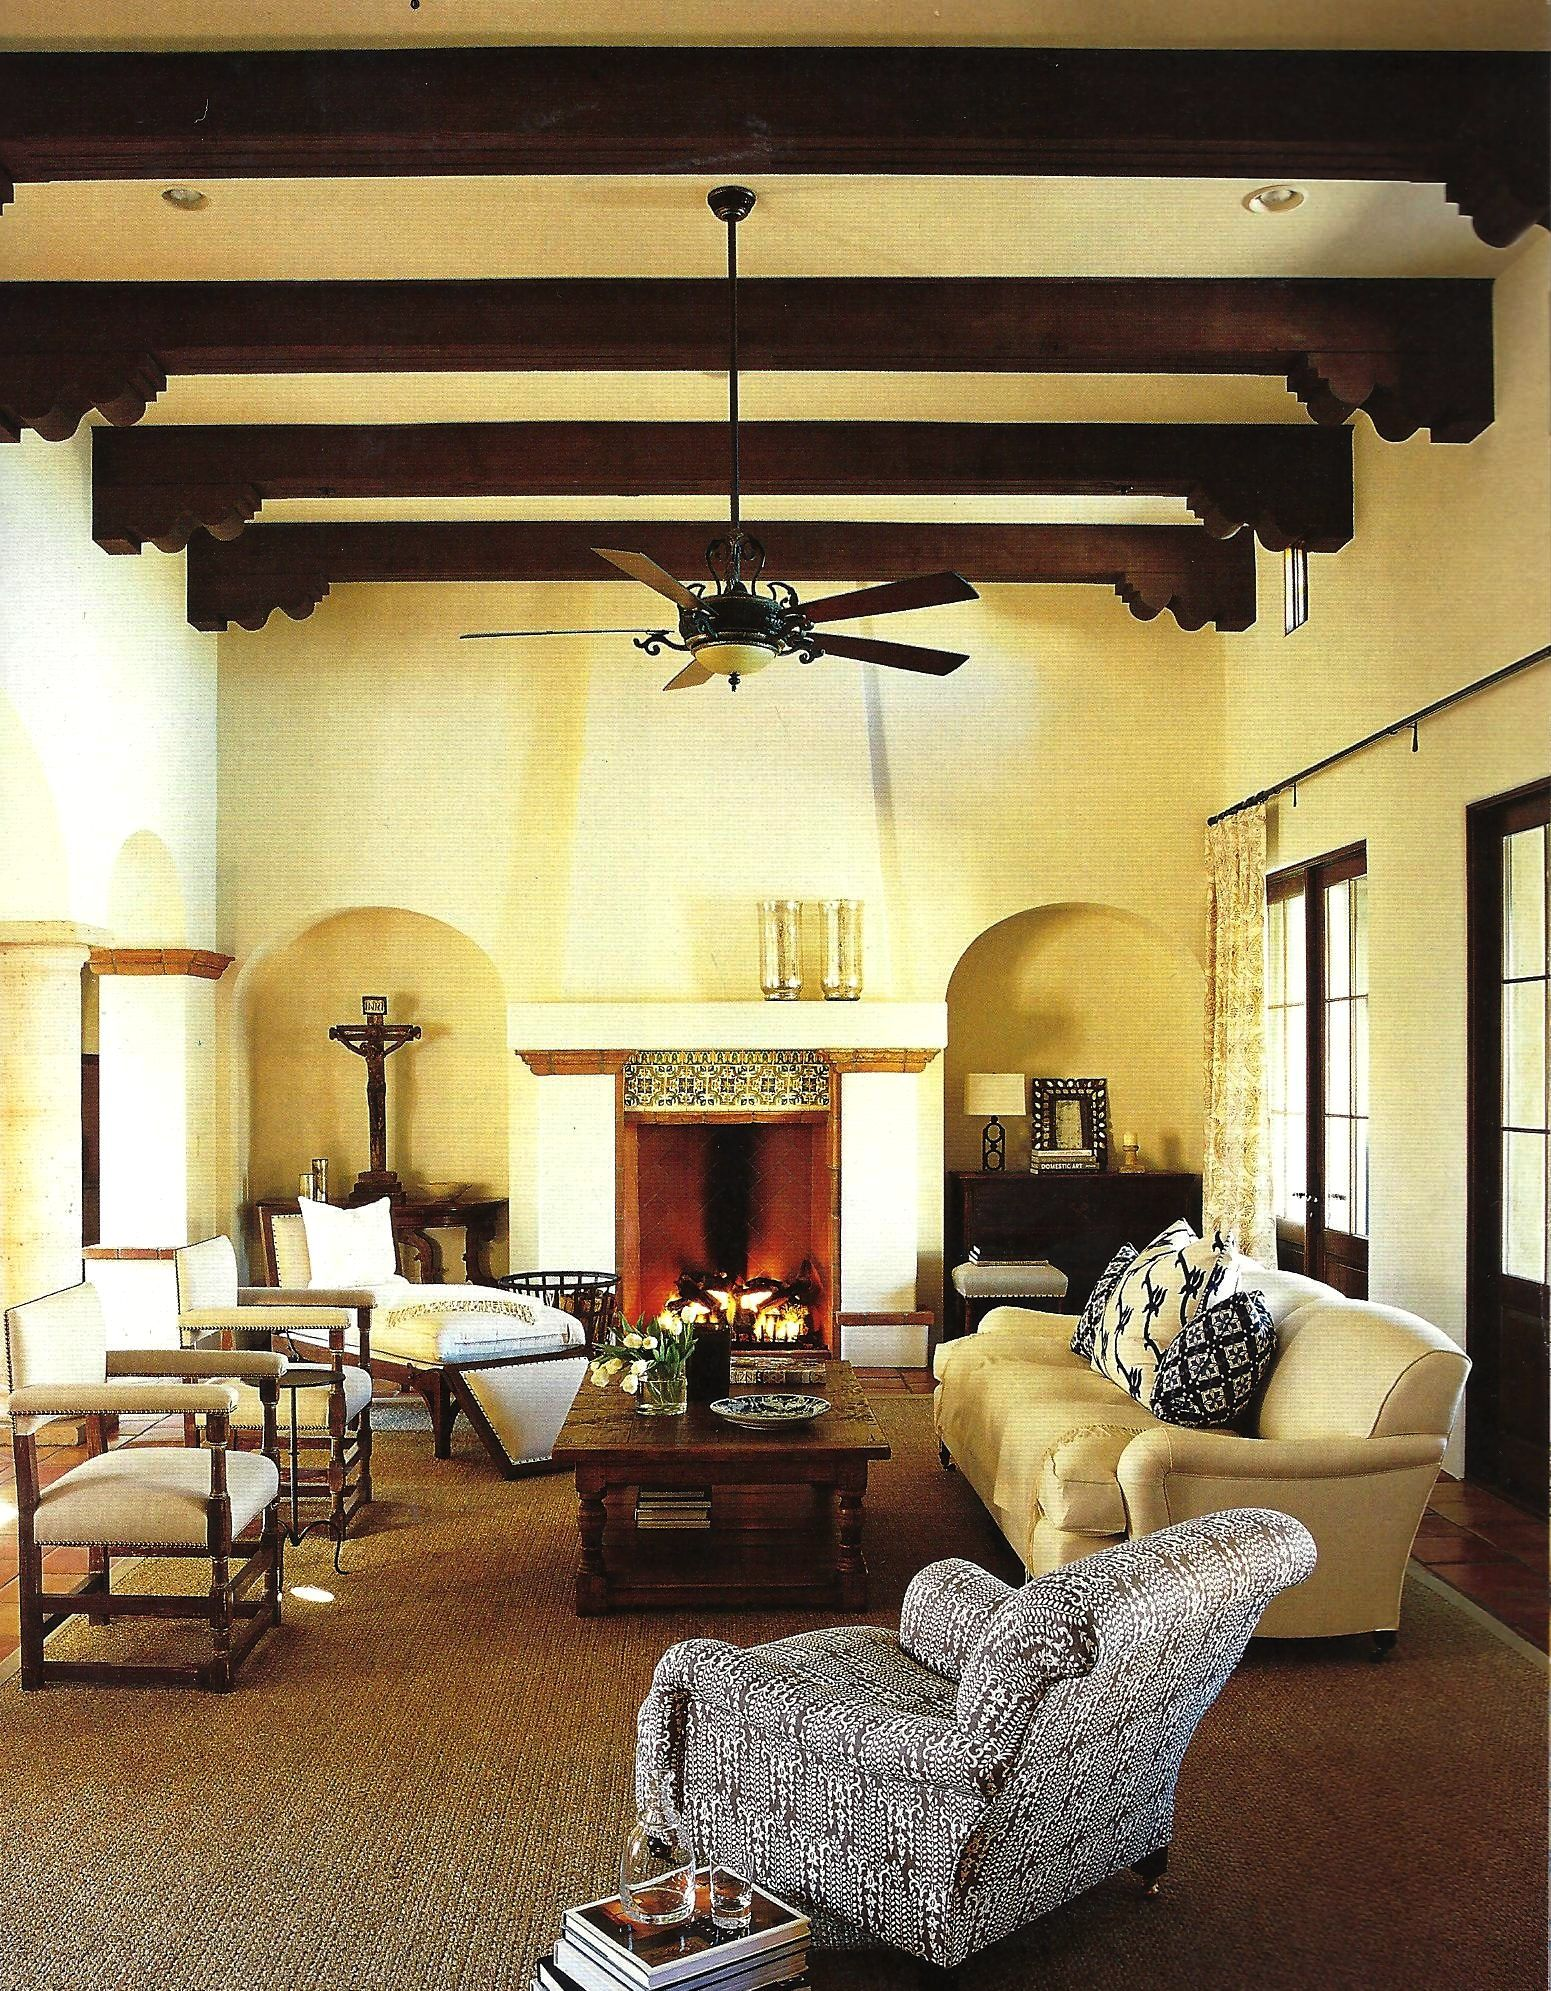 livingroom in spanish stunning spanish influenced interior design with images spanish living room spanish 1178